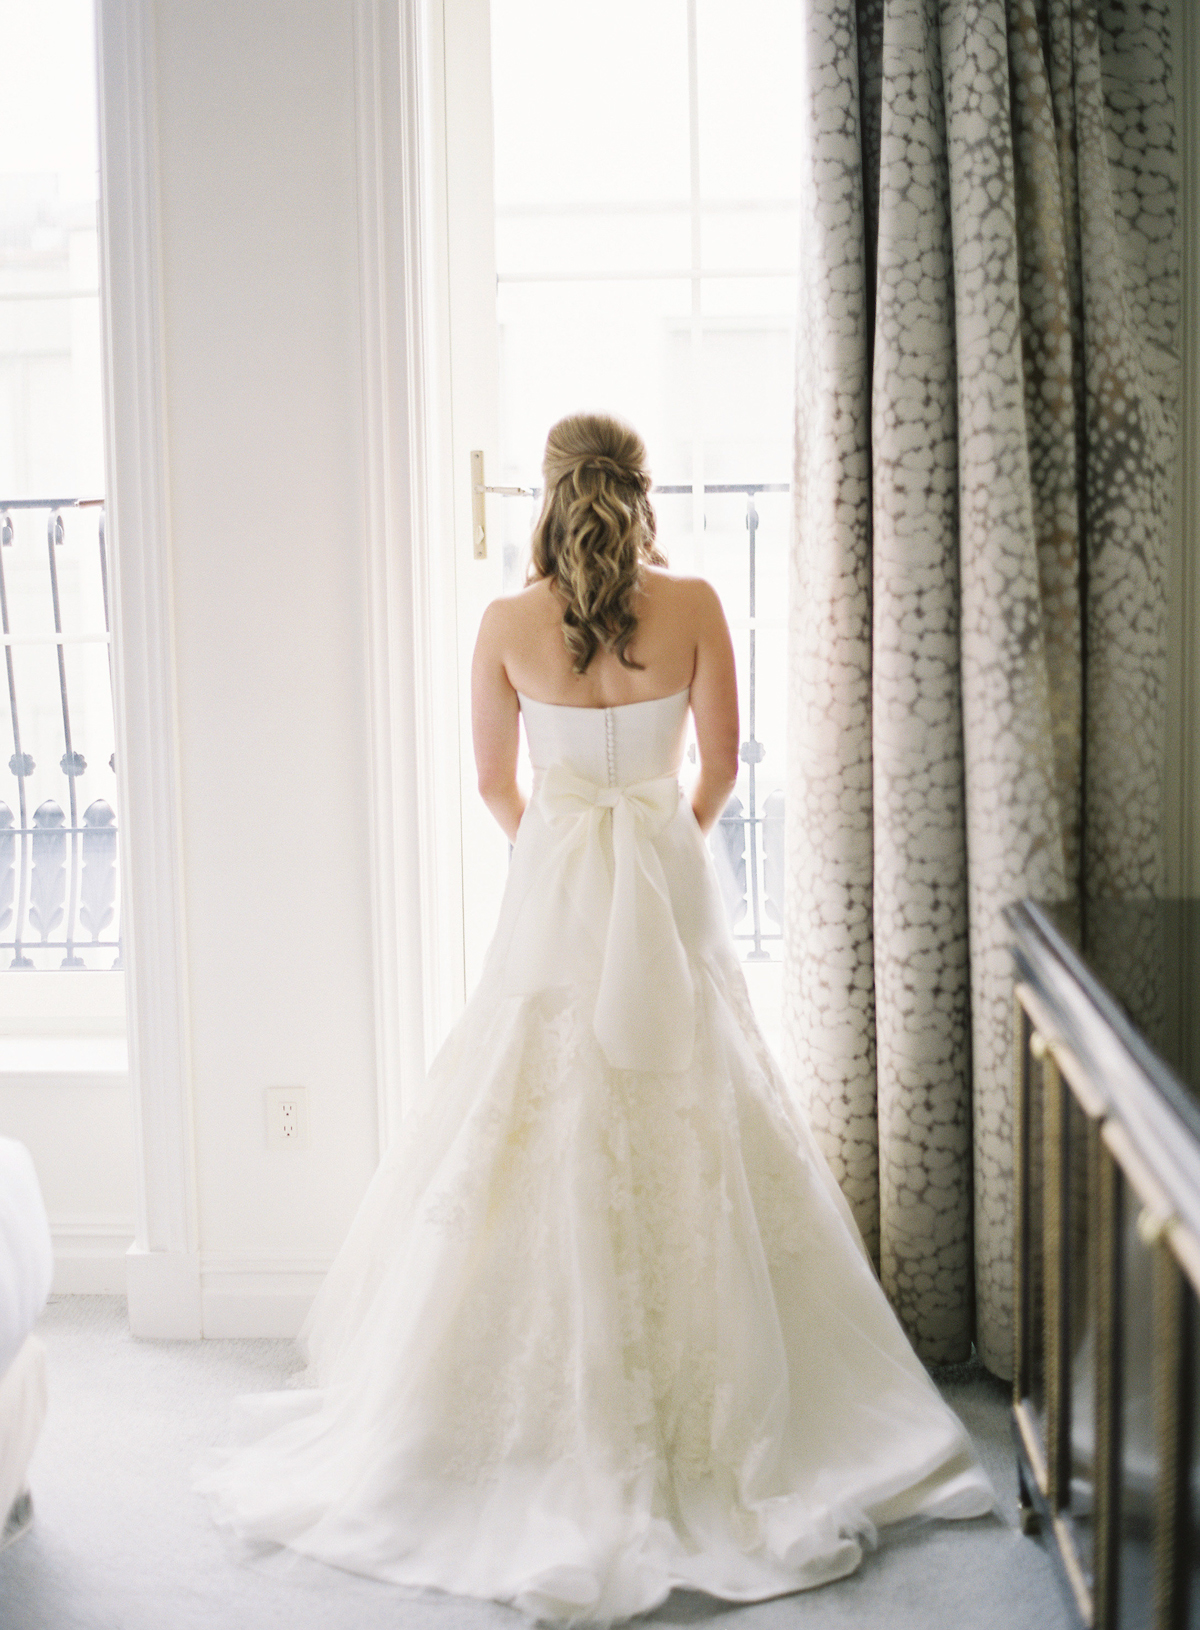 Bride in vera wang gown for Plaza wedding